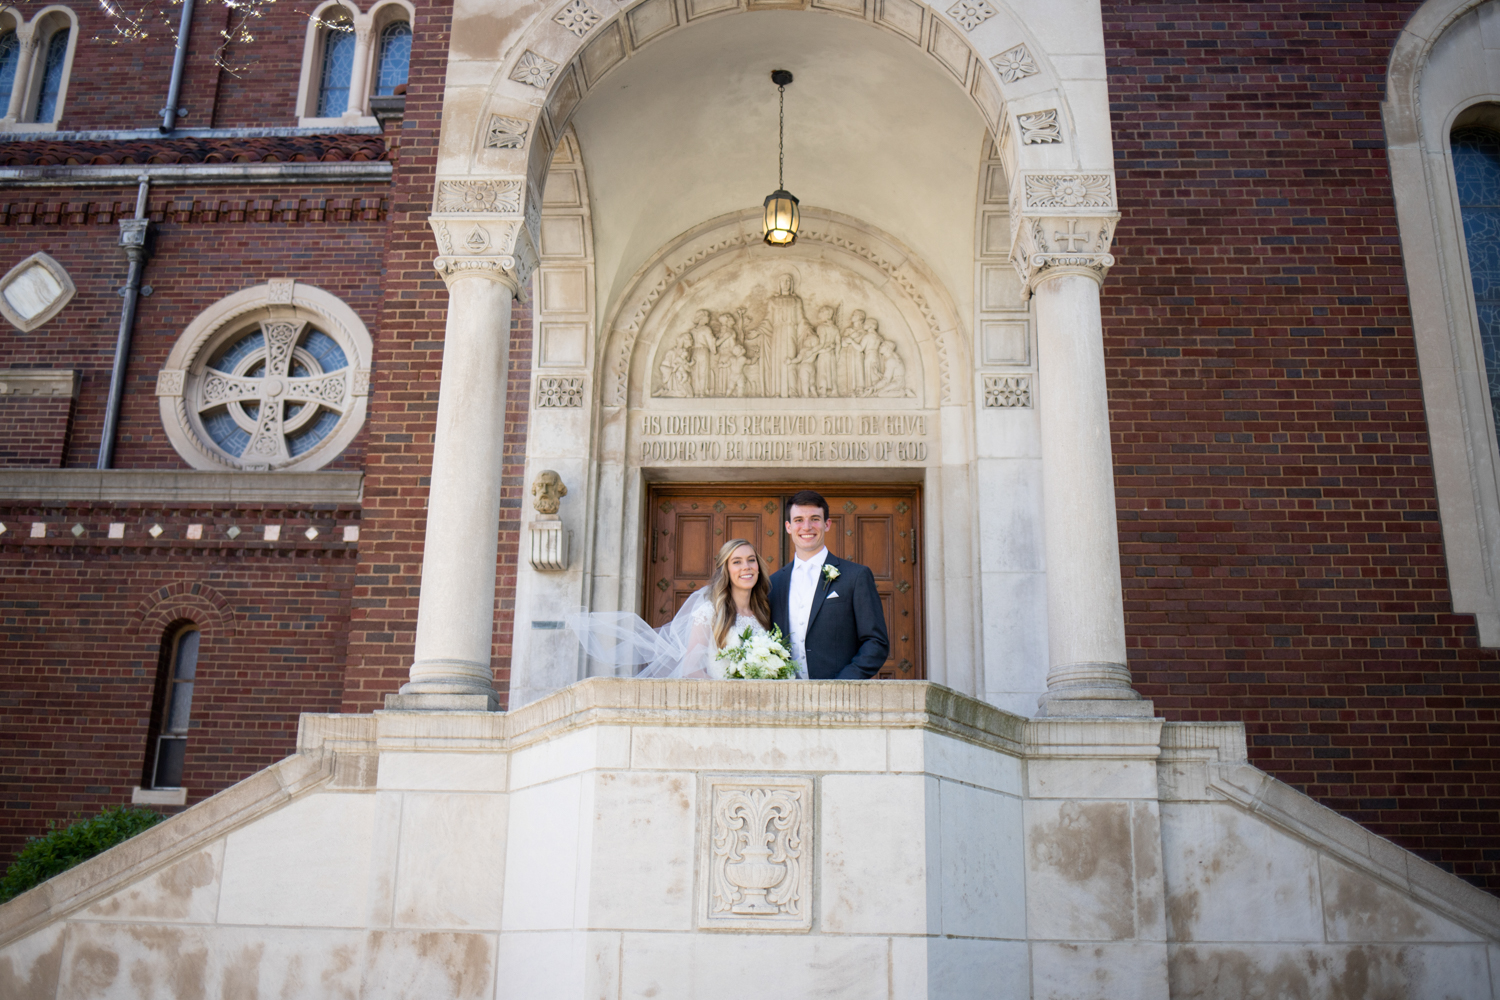 Catholic Wedding at Hilton City Center in Milwaukee, WI - Whit Meza Photography